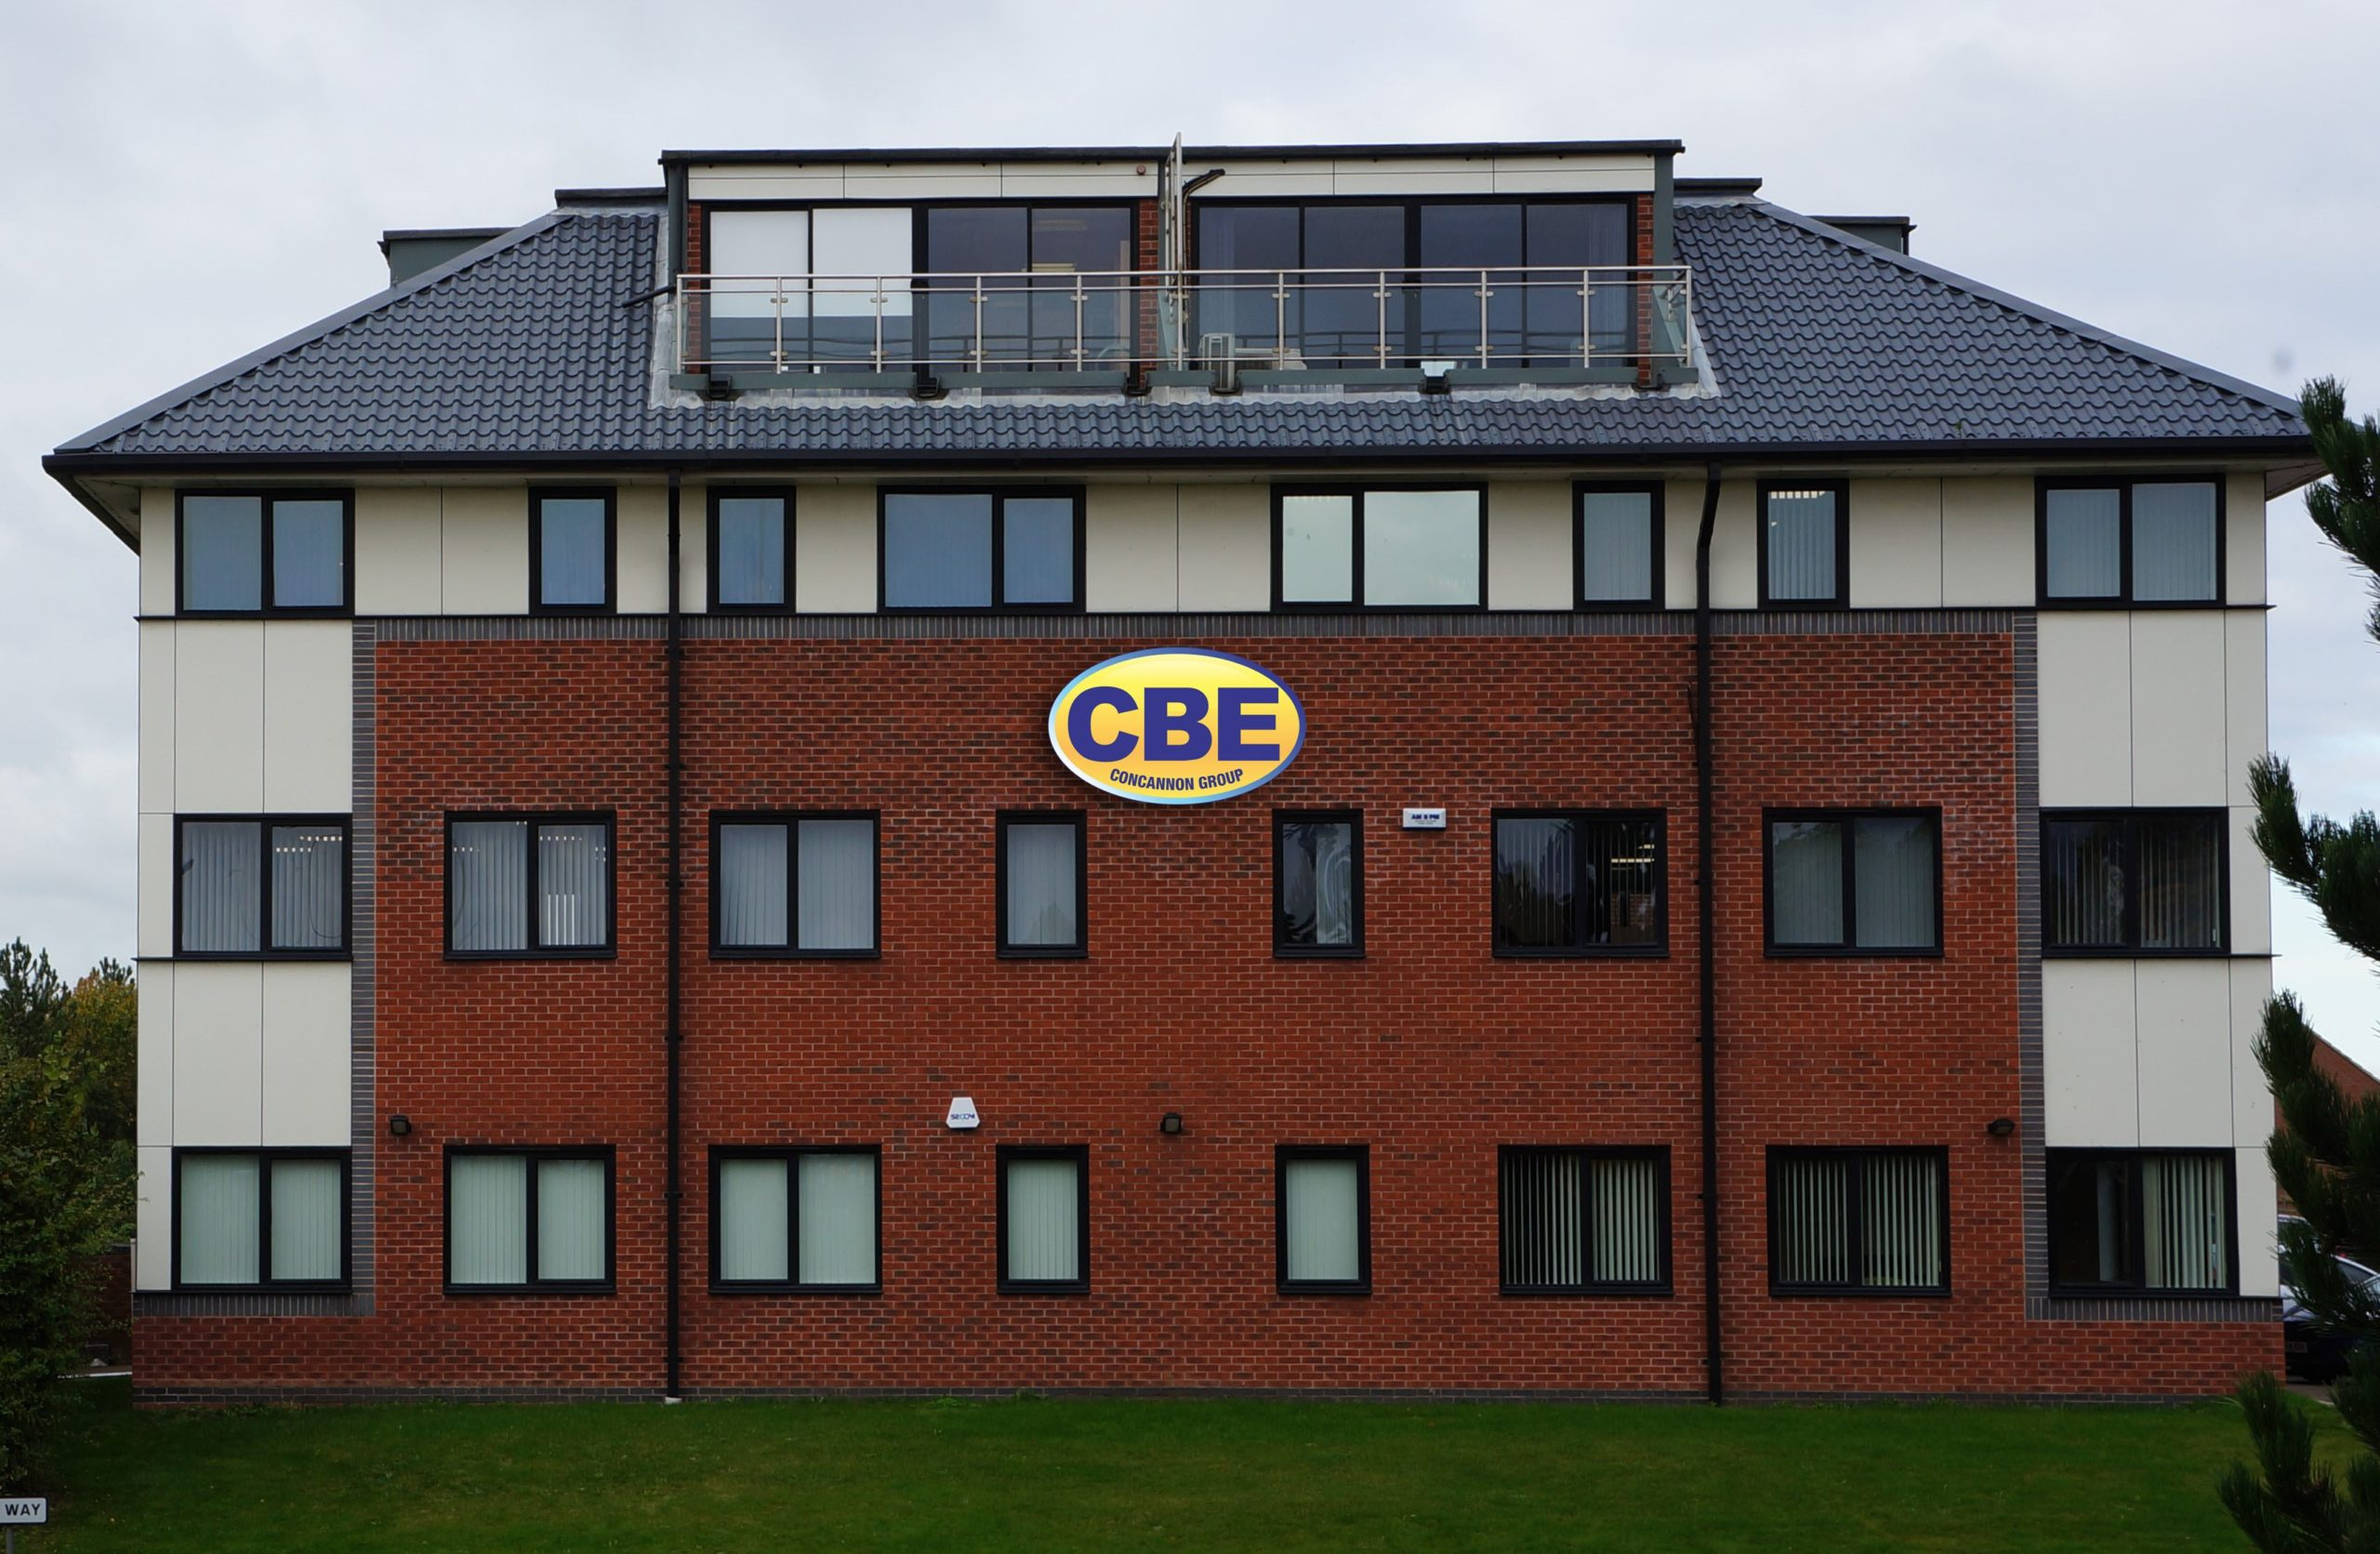 CBE's continued growth within the UK was recently highlighted in the Sunday Business Post